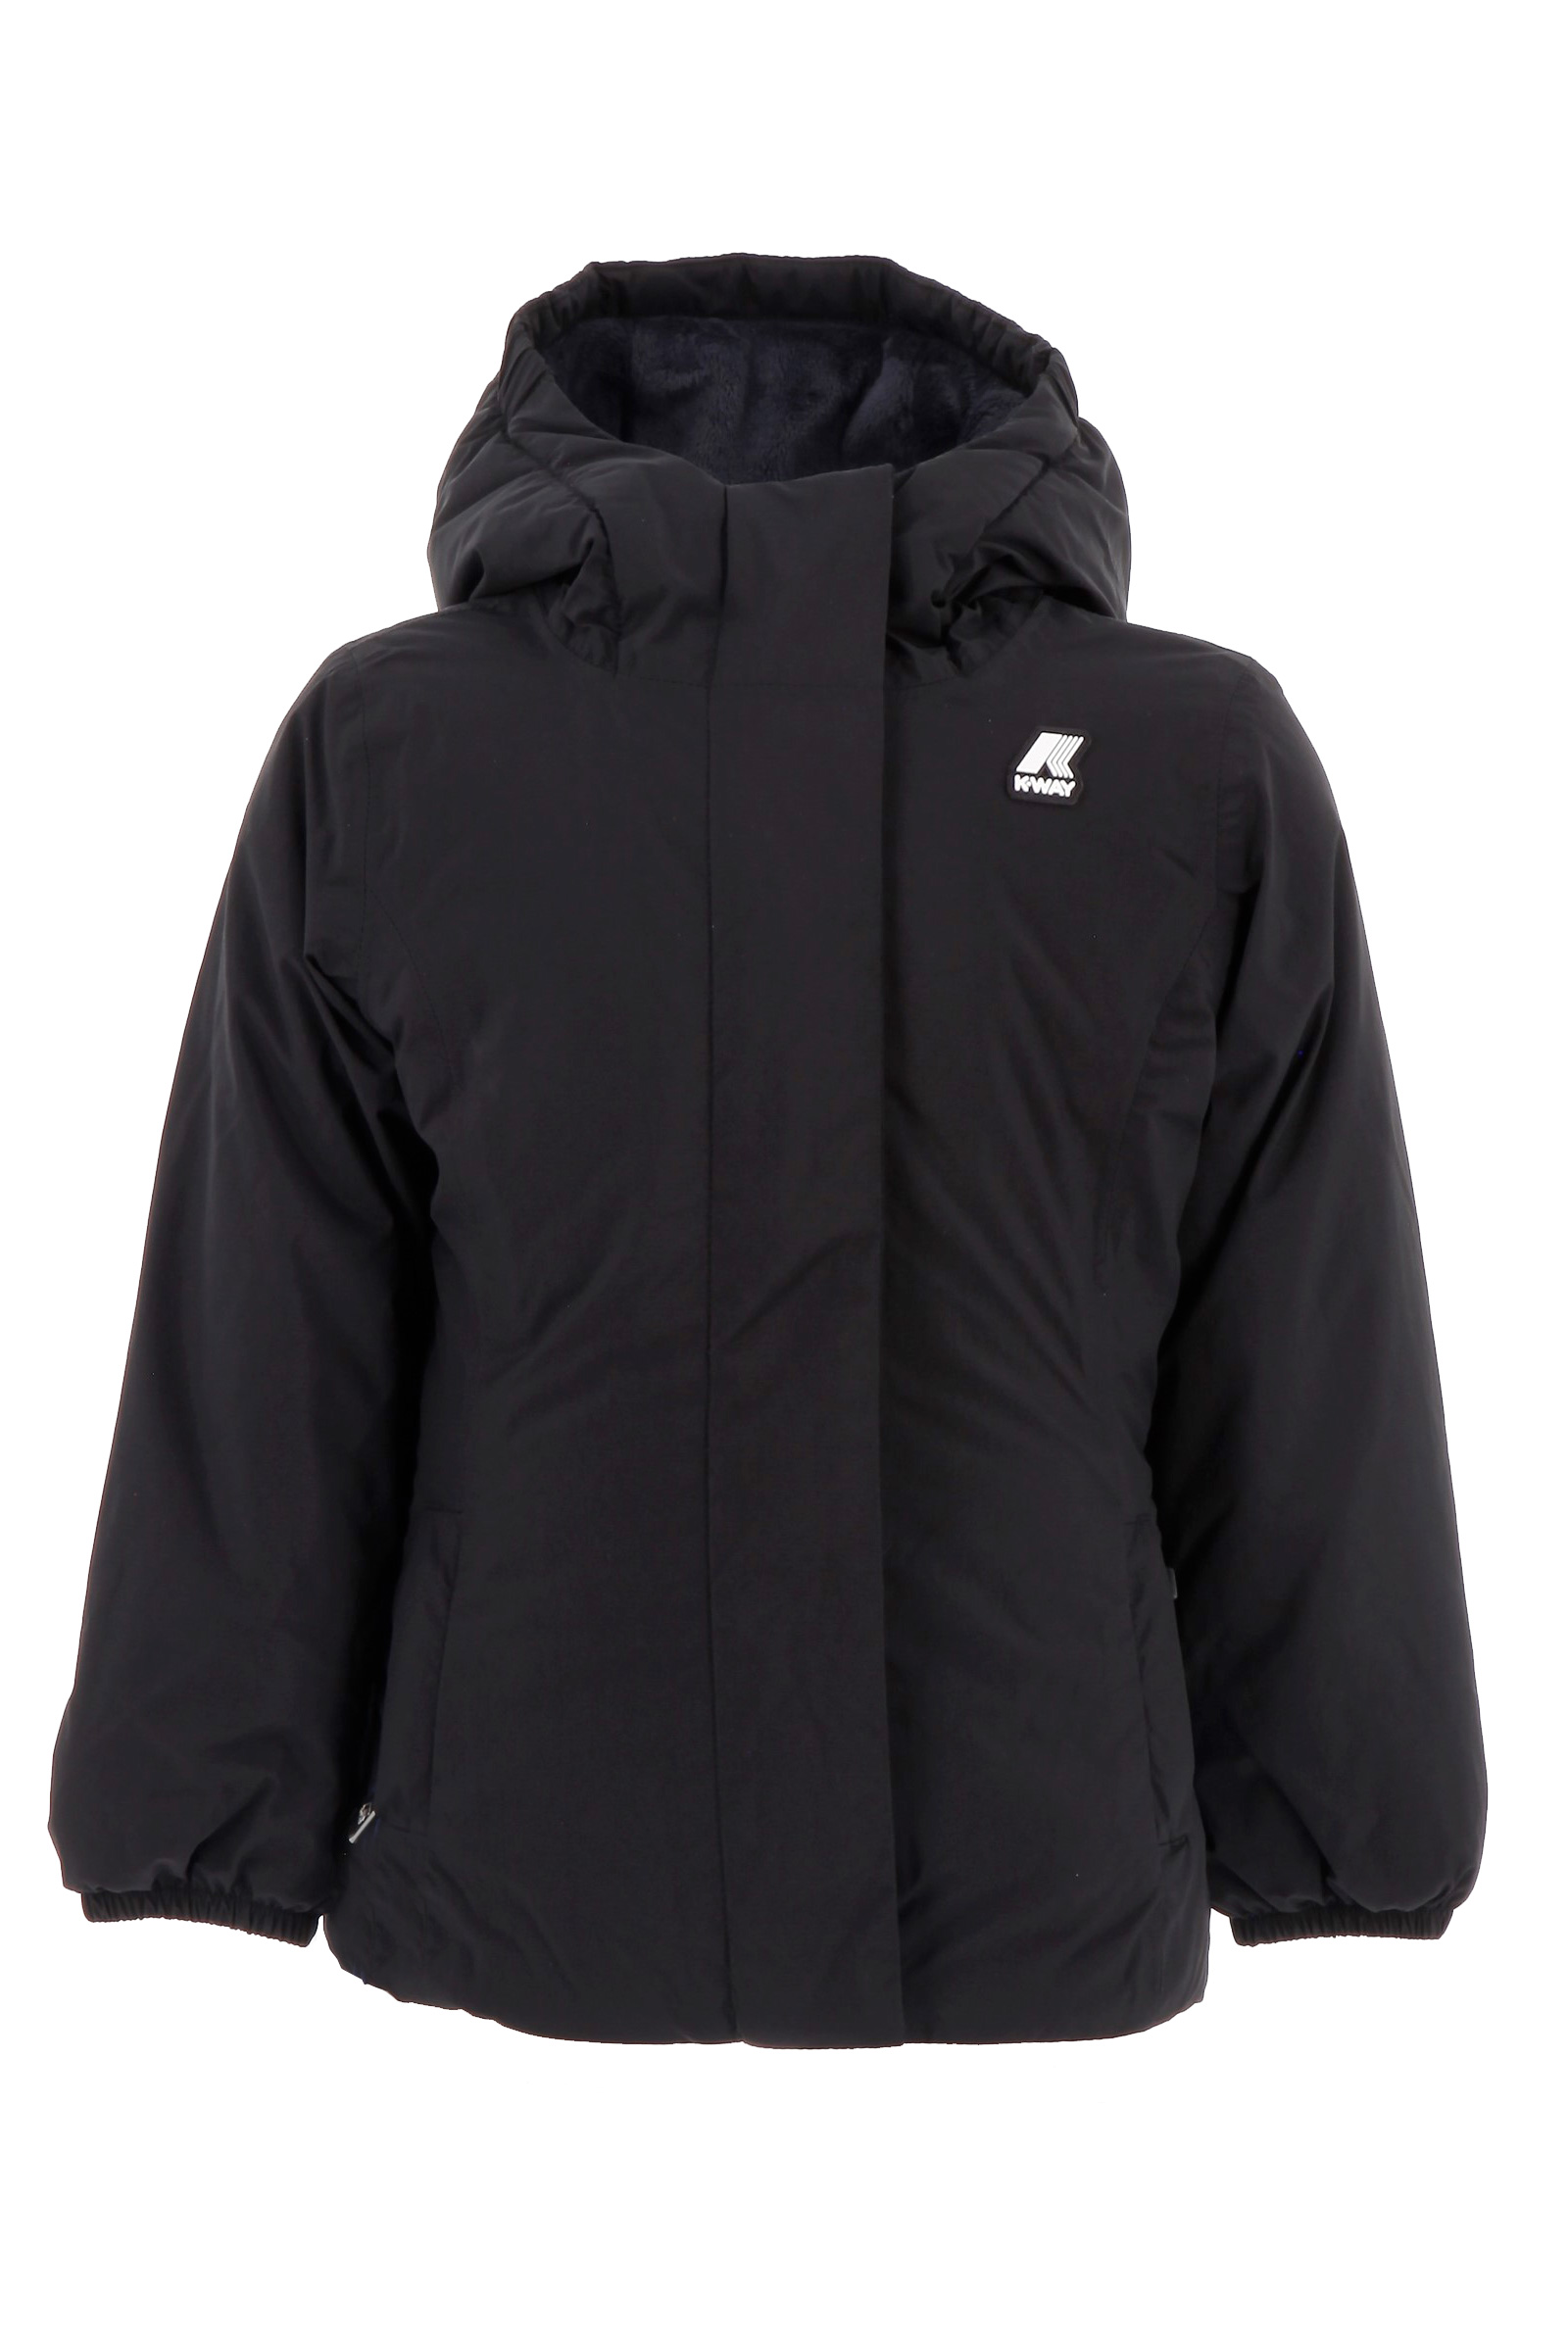 K-way jacket K-way | Jacket | K1119RWA3C